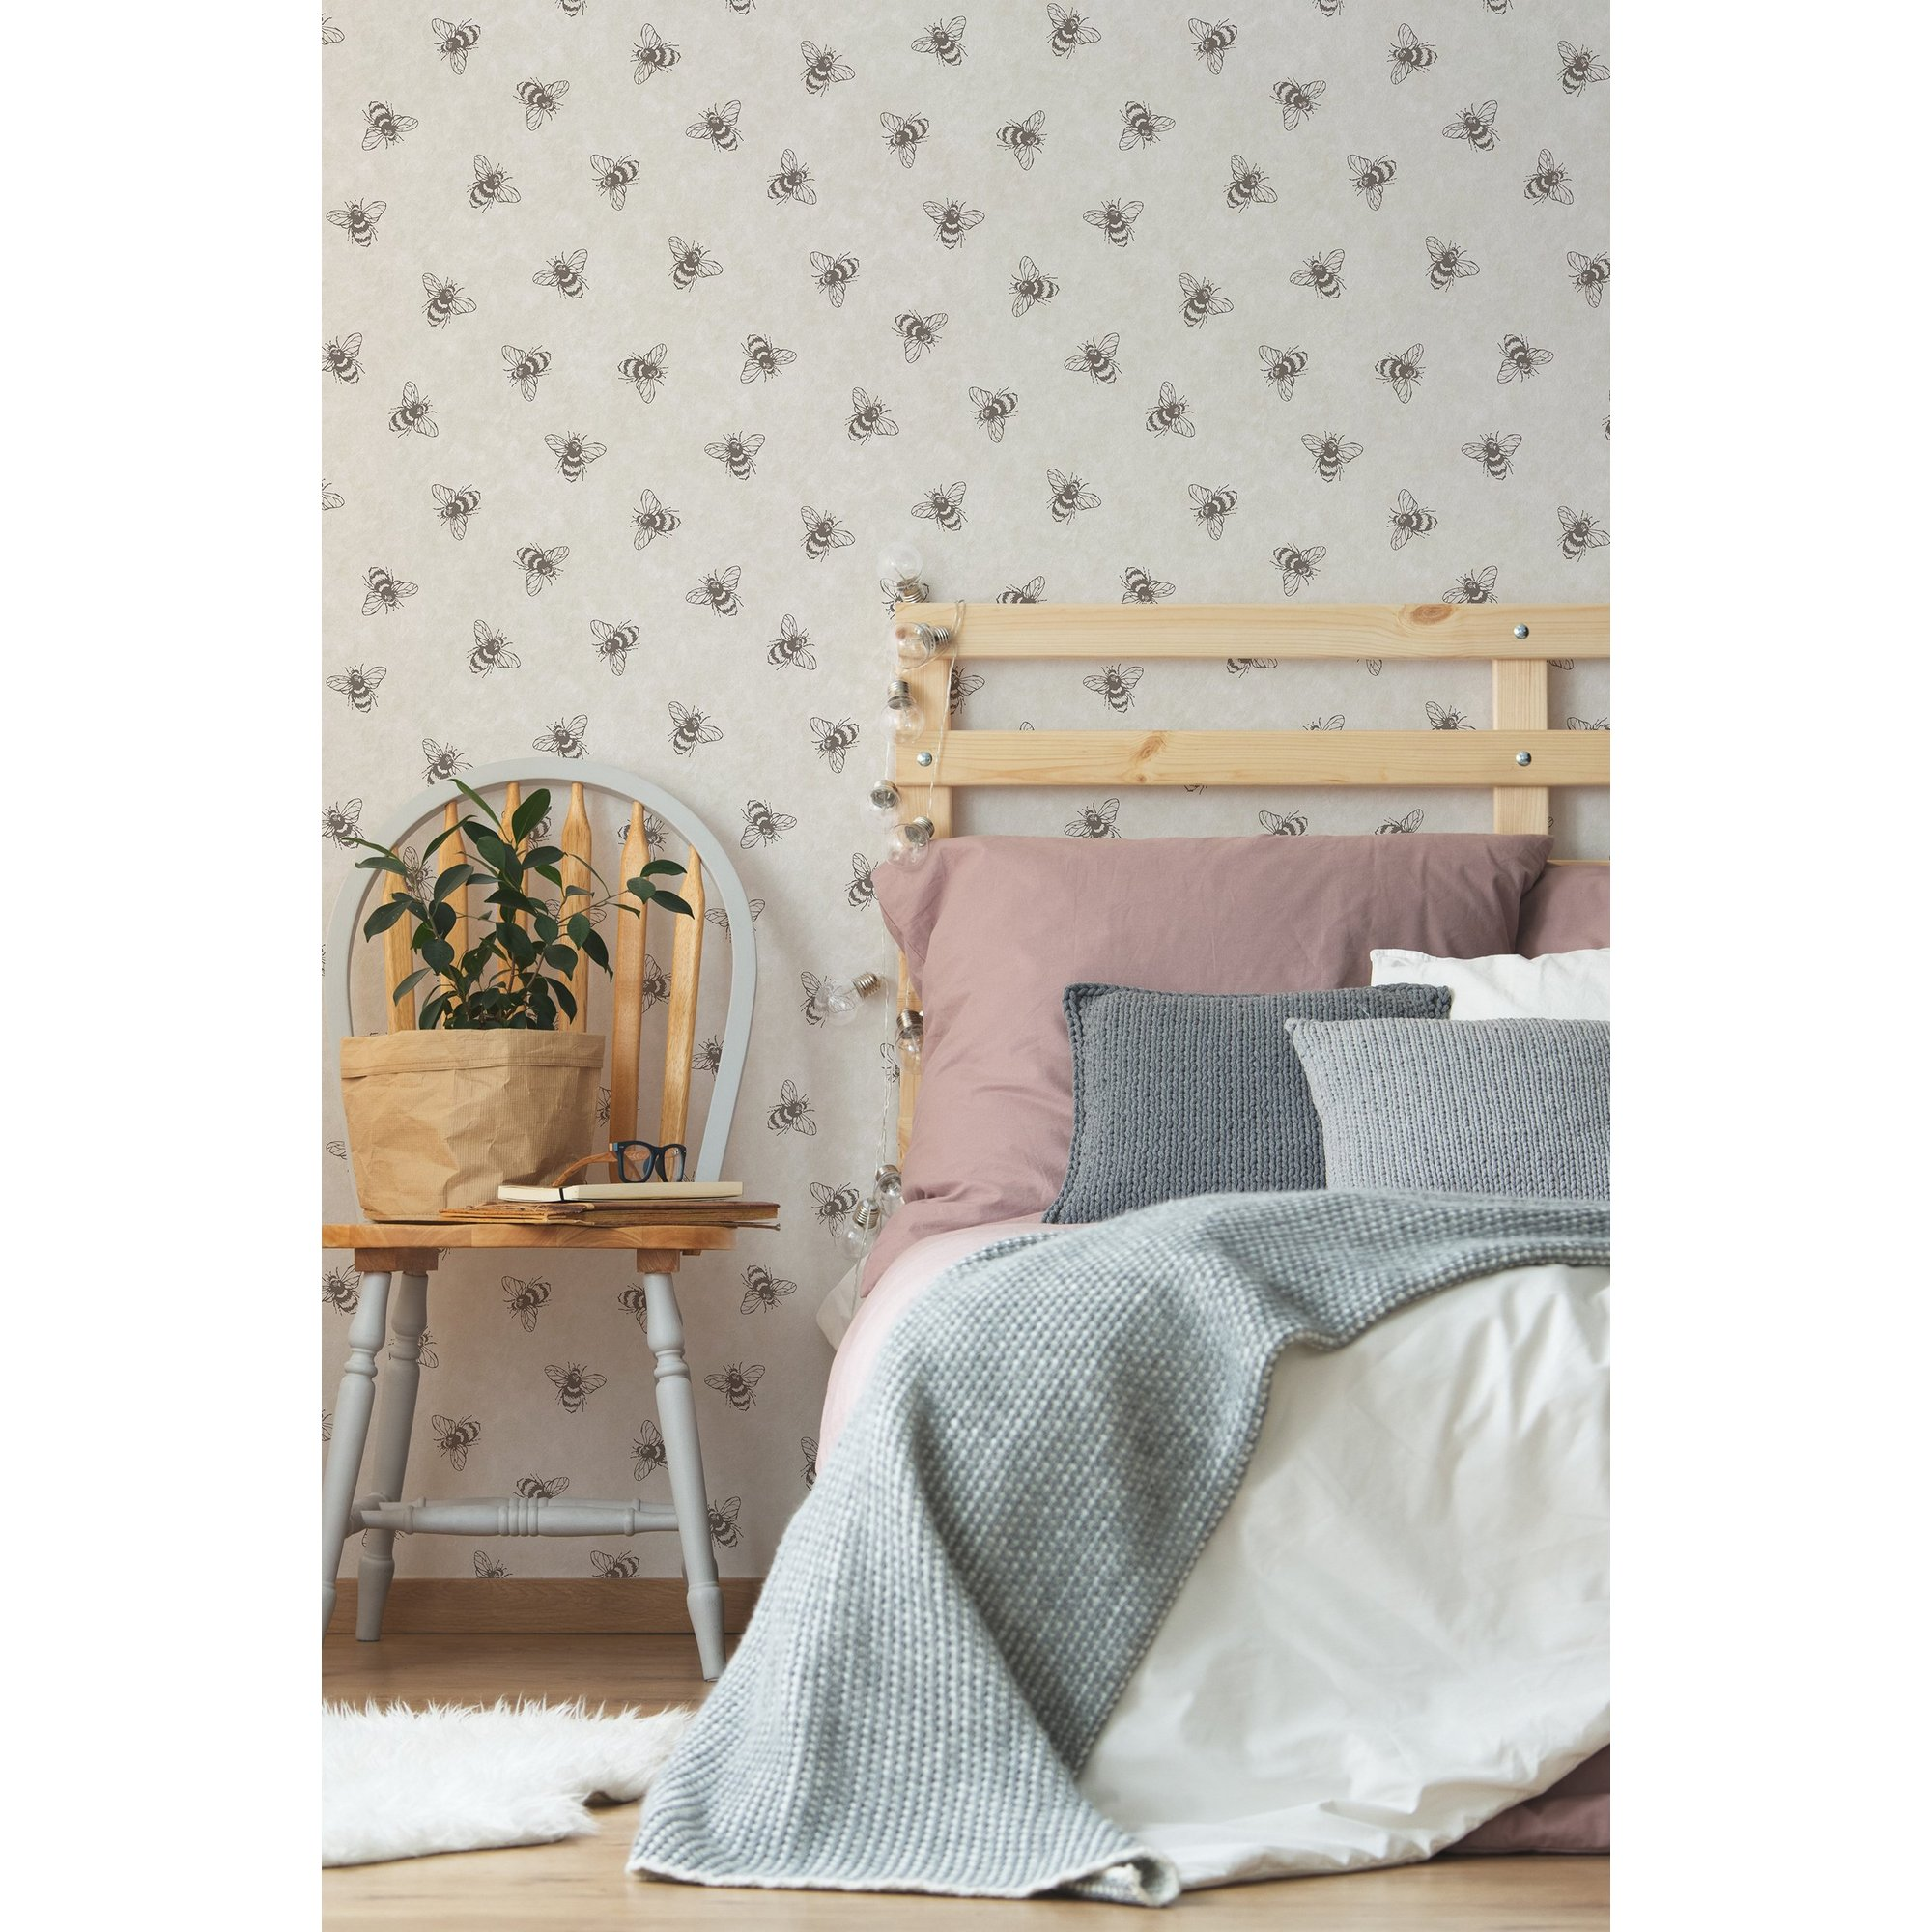 Image of Boutique Let It Bee Natural Wallpaper